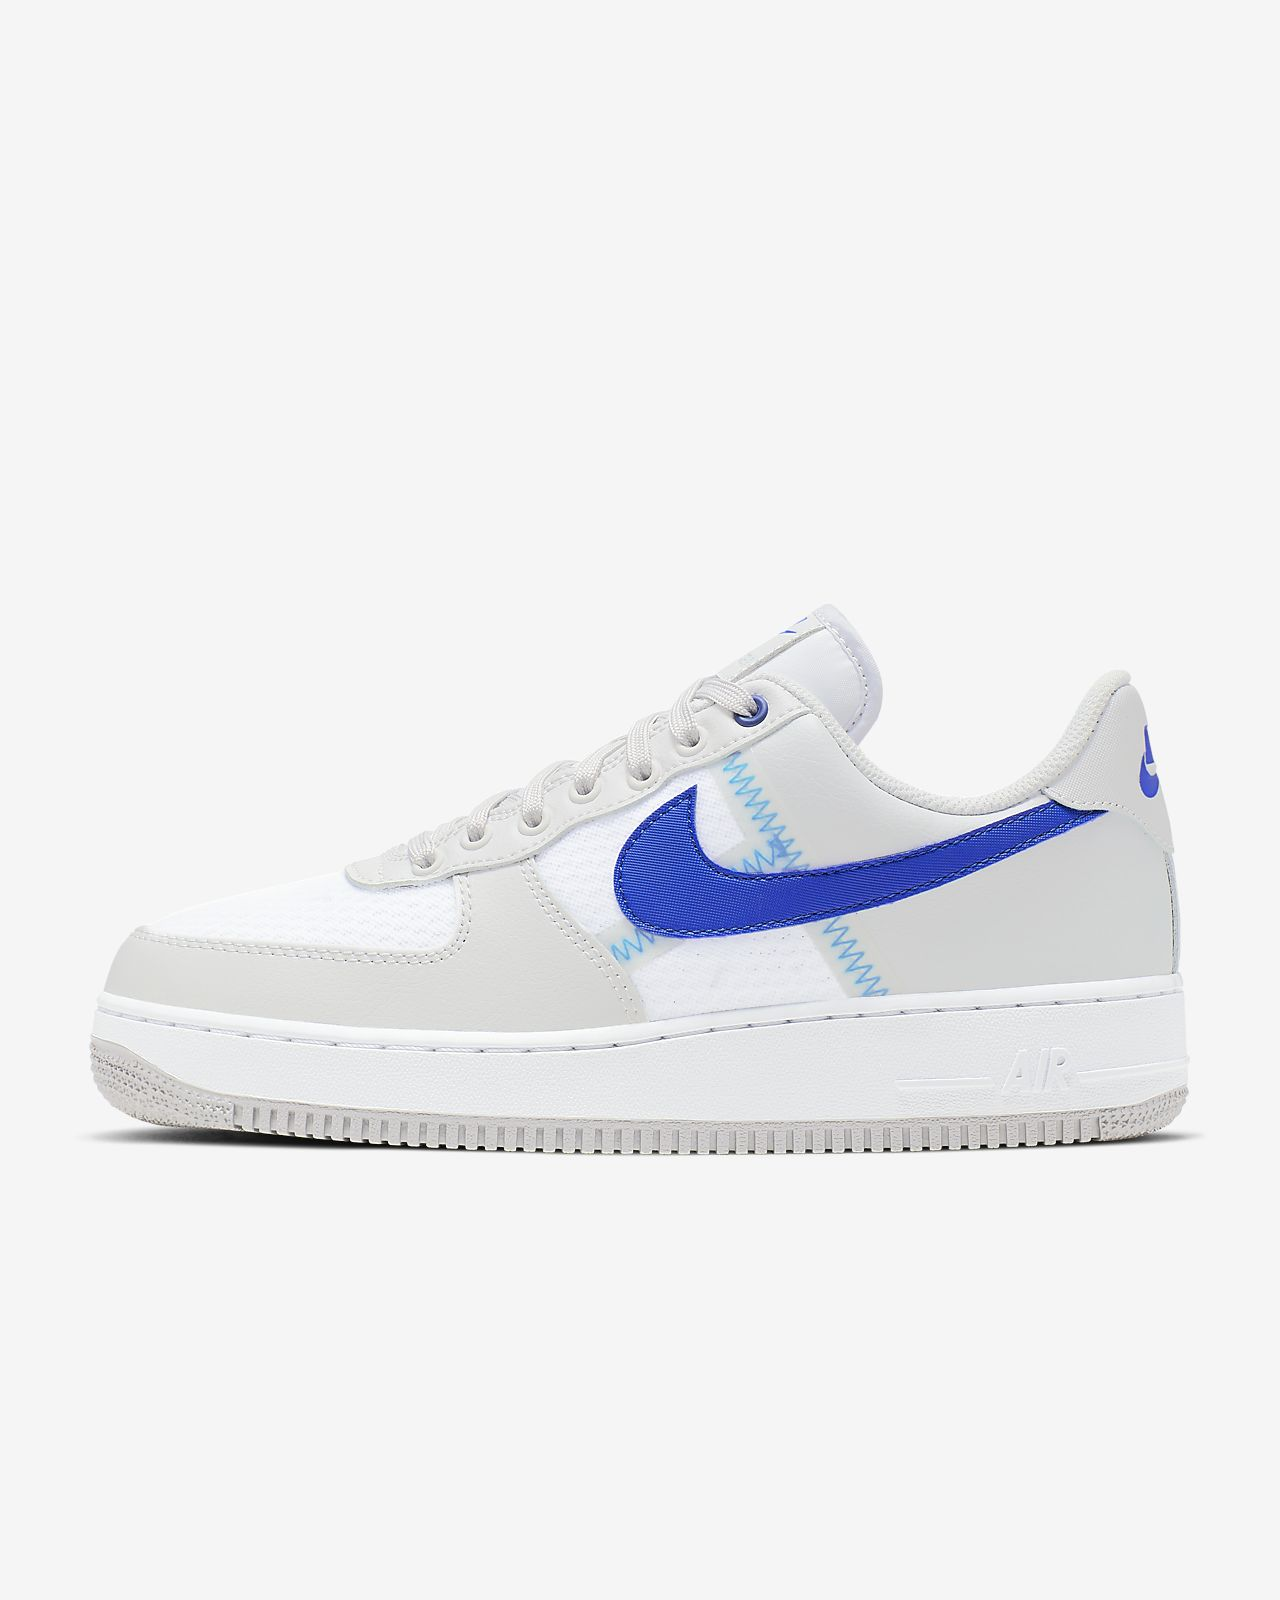 Nike Air Force 1 '07 LV8 Herrenschuh